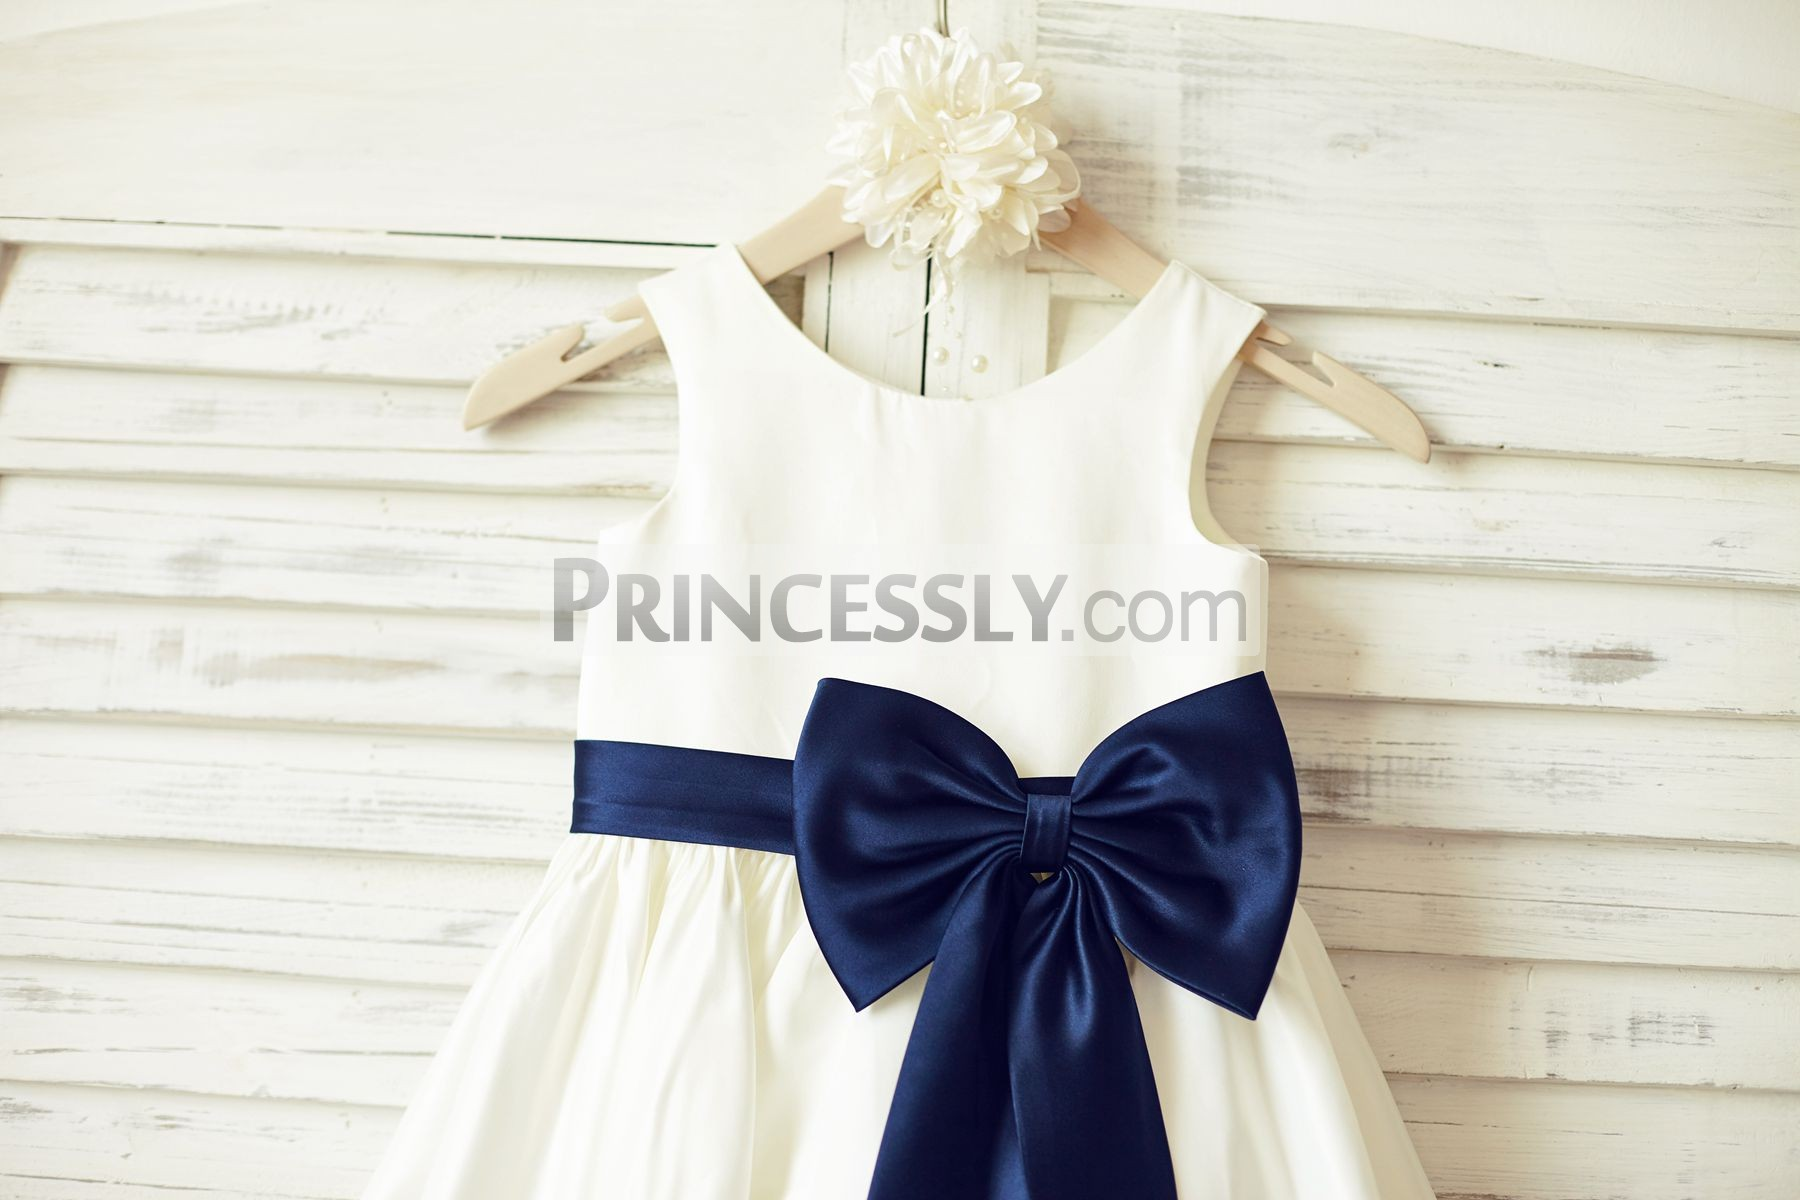 Ivory satin sleeveless flower girl dress with navy blue belt bow round neck sleeveless panel bodice with navy blue sash and bow izmirmasajfo